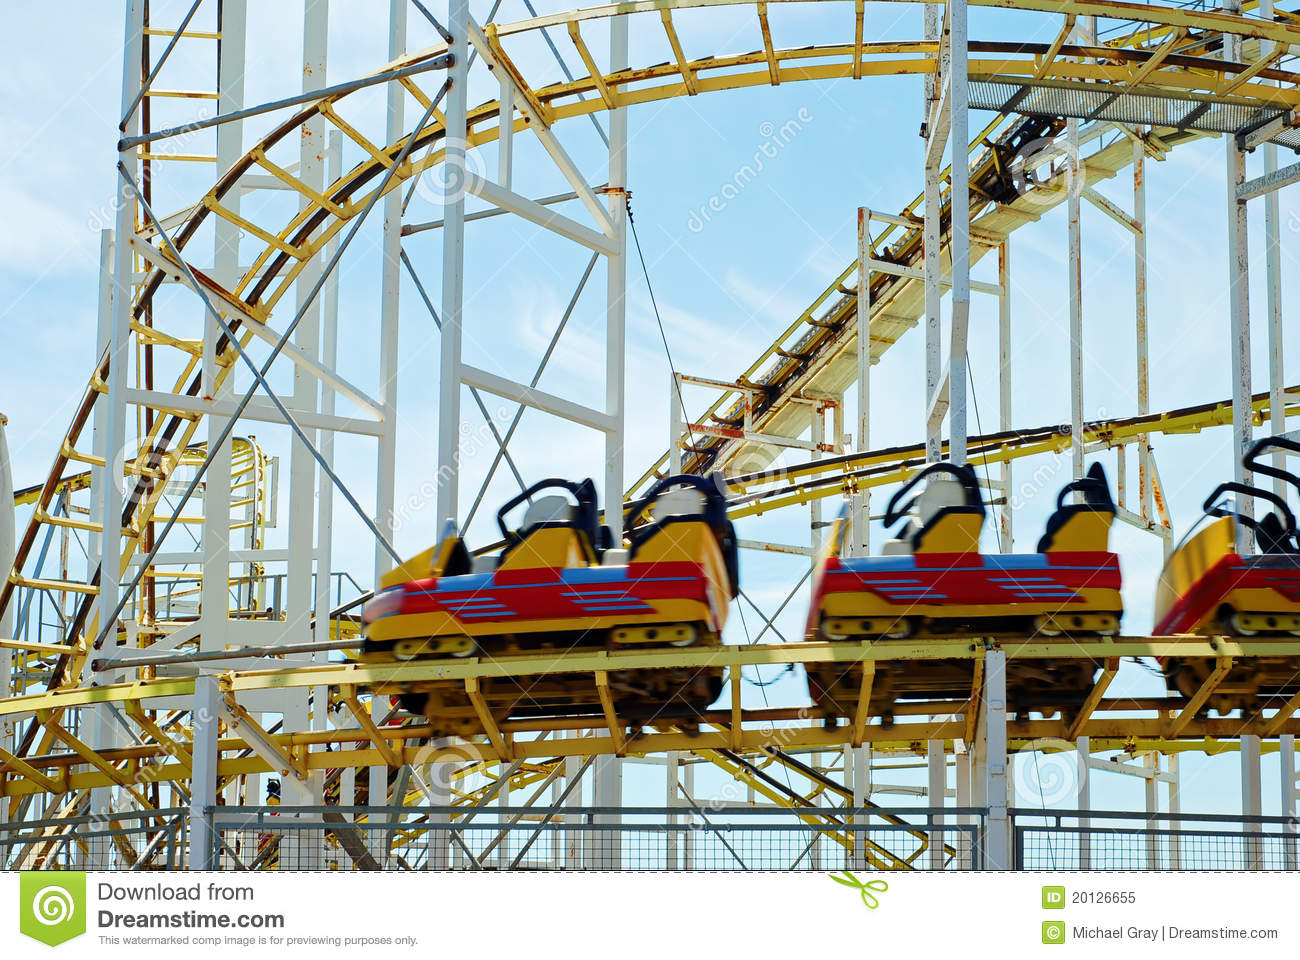 Roller Coaster With Motion Blur Stock Image - Image: 20126655